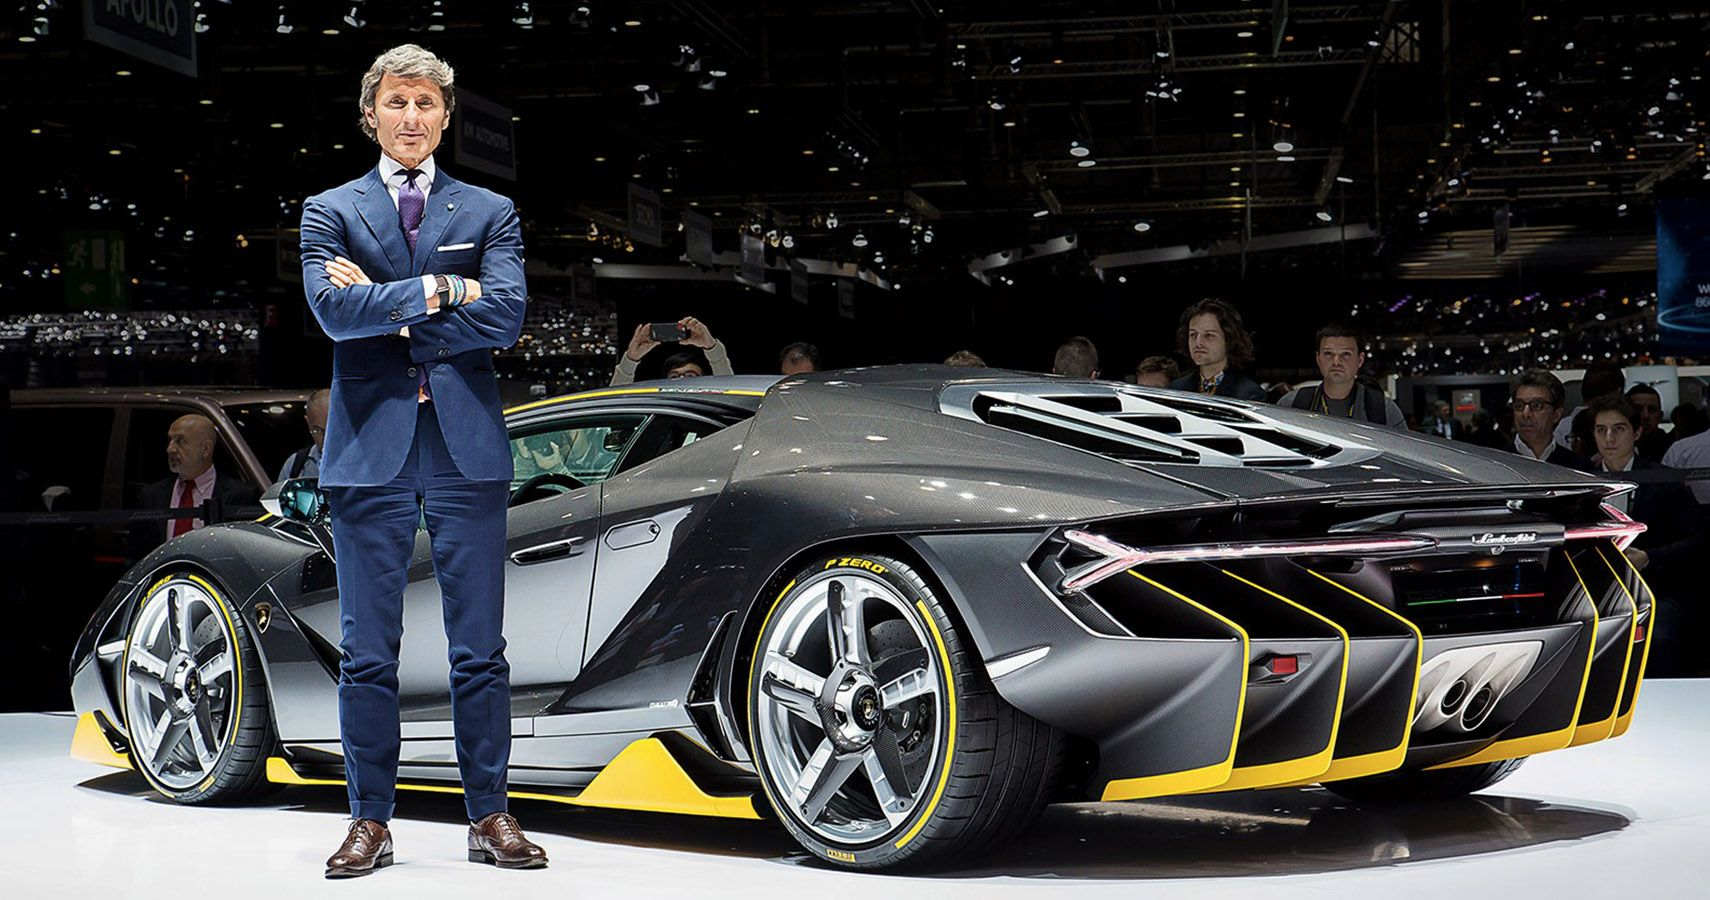 Bugatti's Stephan Winkelmann Named CEO At Lamborghini, Sparking Sell-Off Rumors